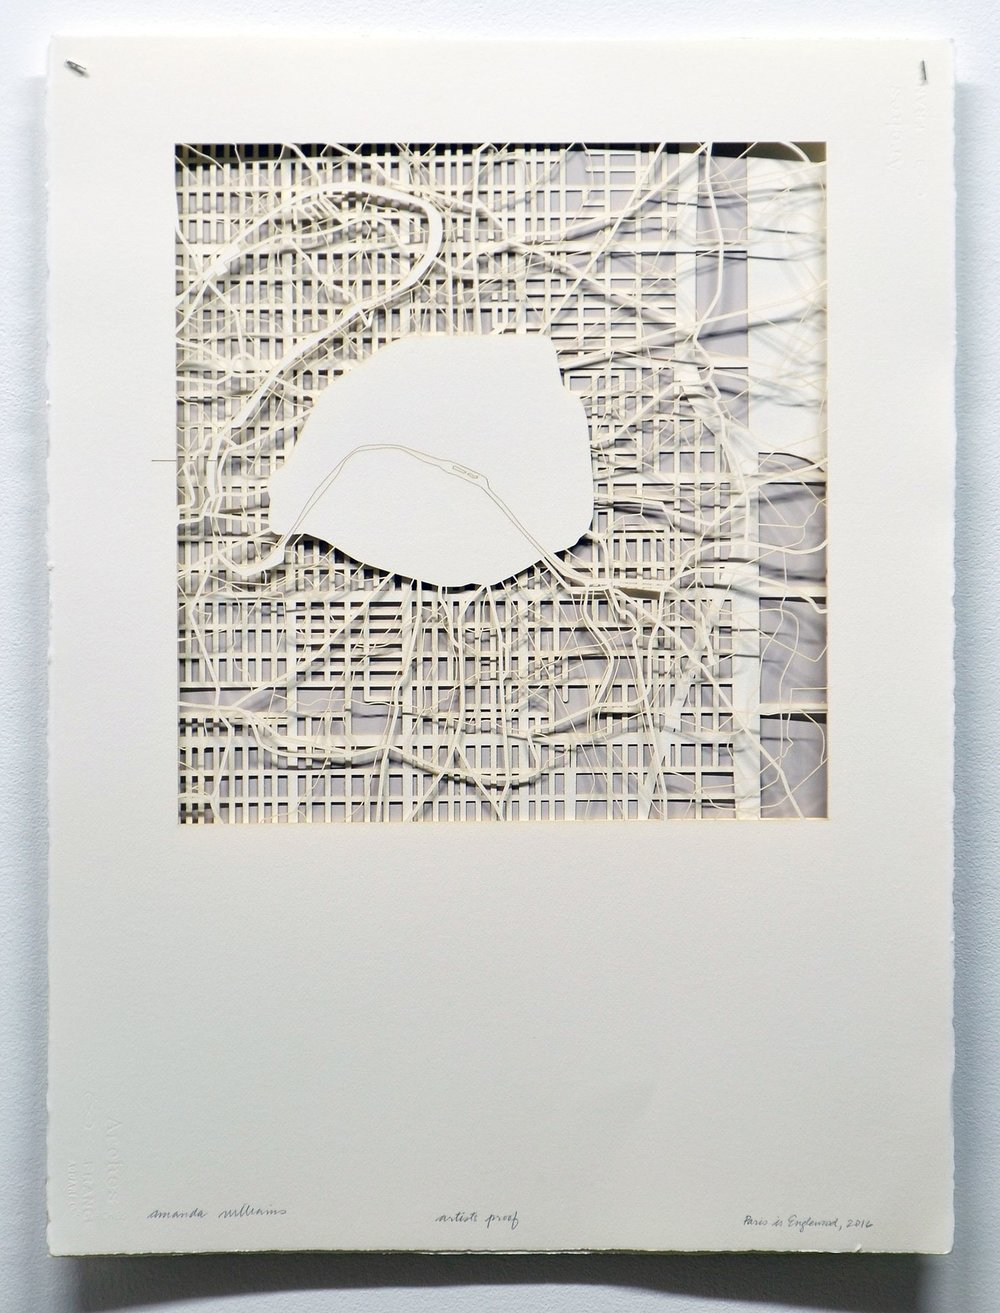 Amanda Williams,  Paris is Englewood , 2016. Laser-cut paper, artist's proof from an edition of 15; 30 × 22 ½ in. (76.2 × 57.2 cm)